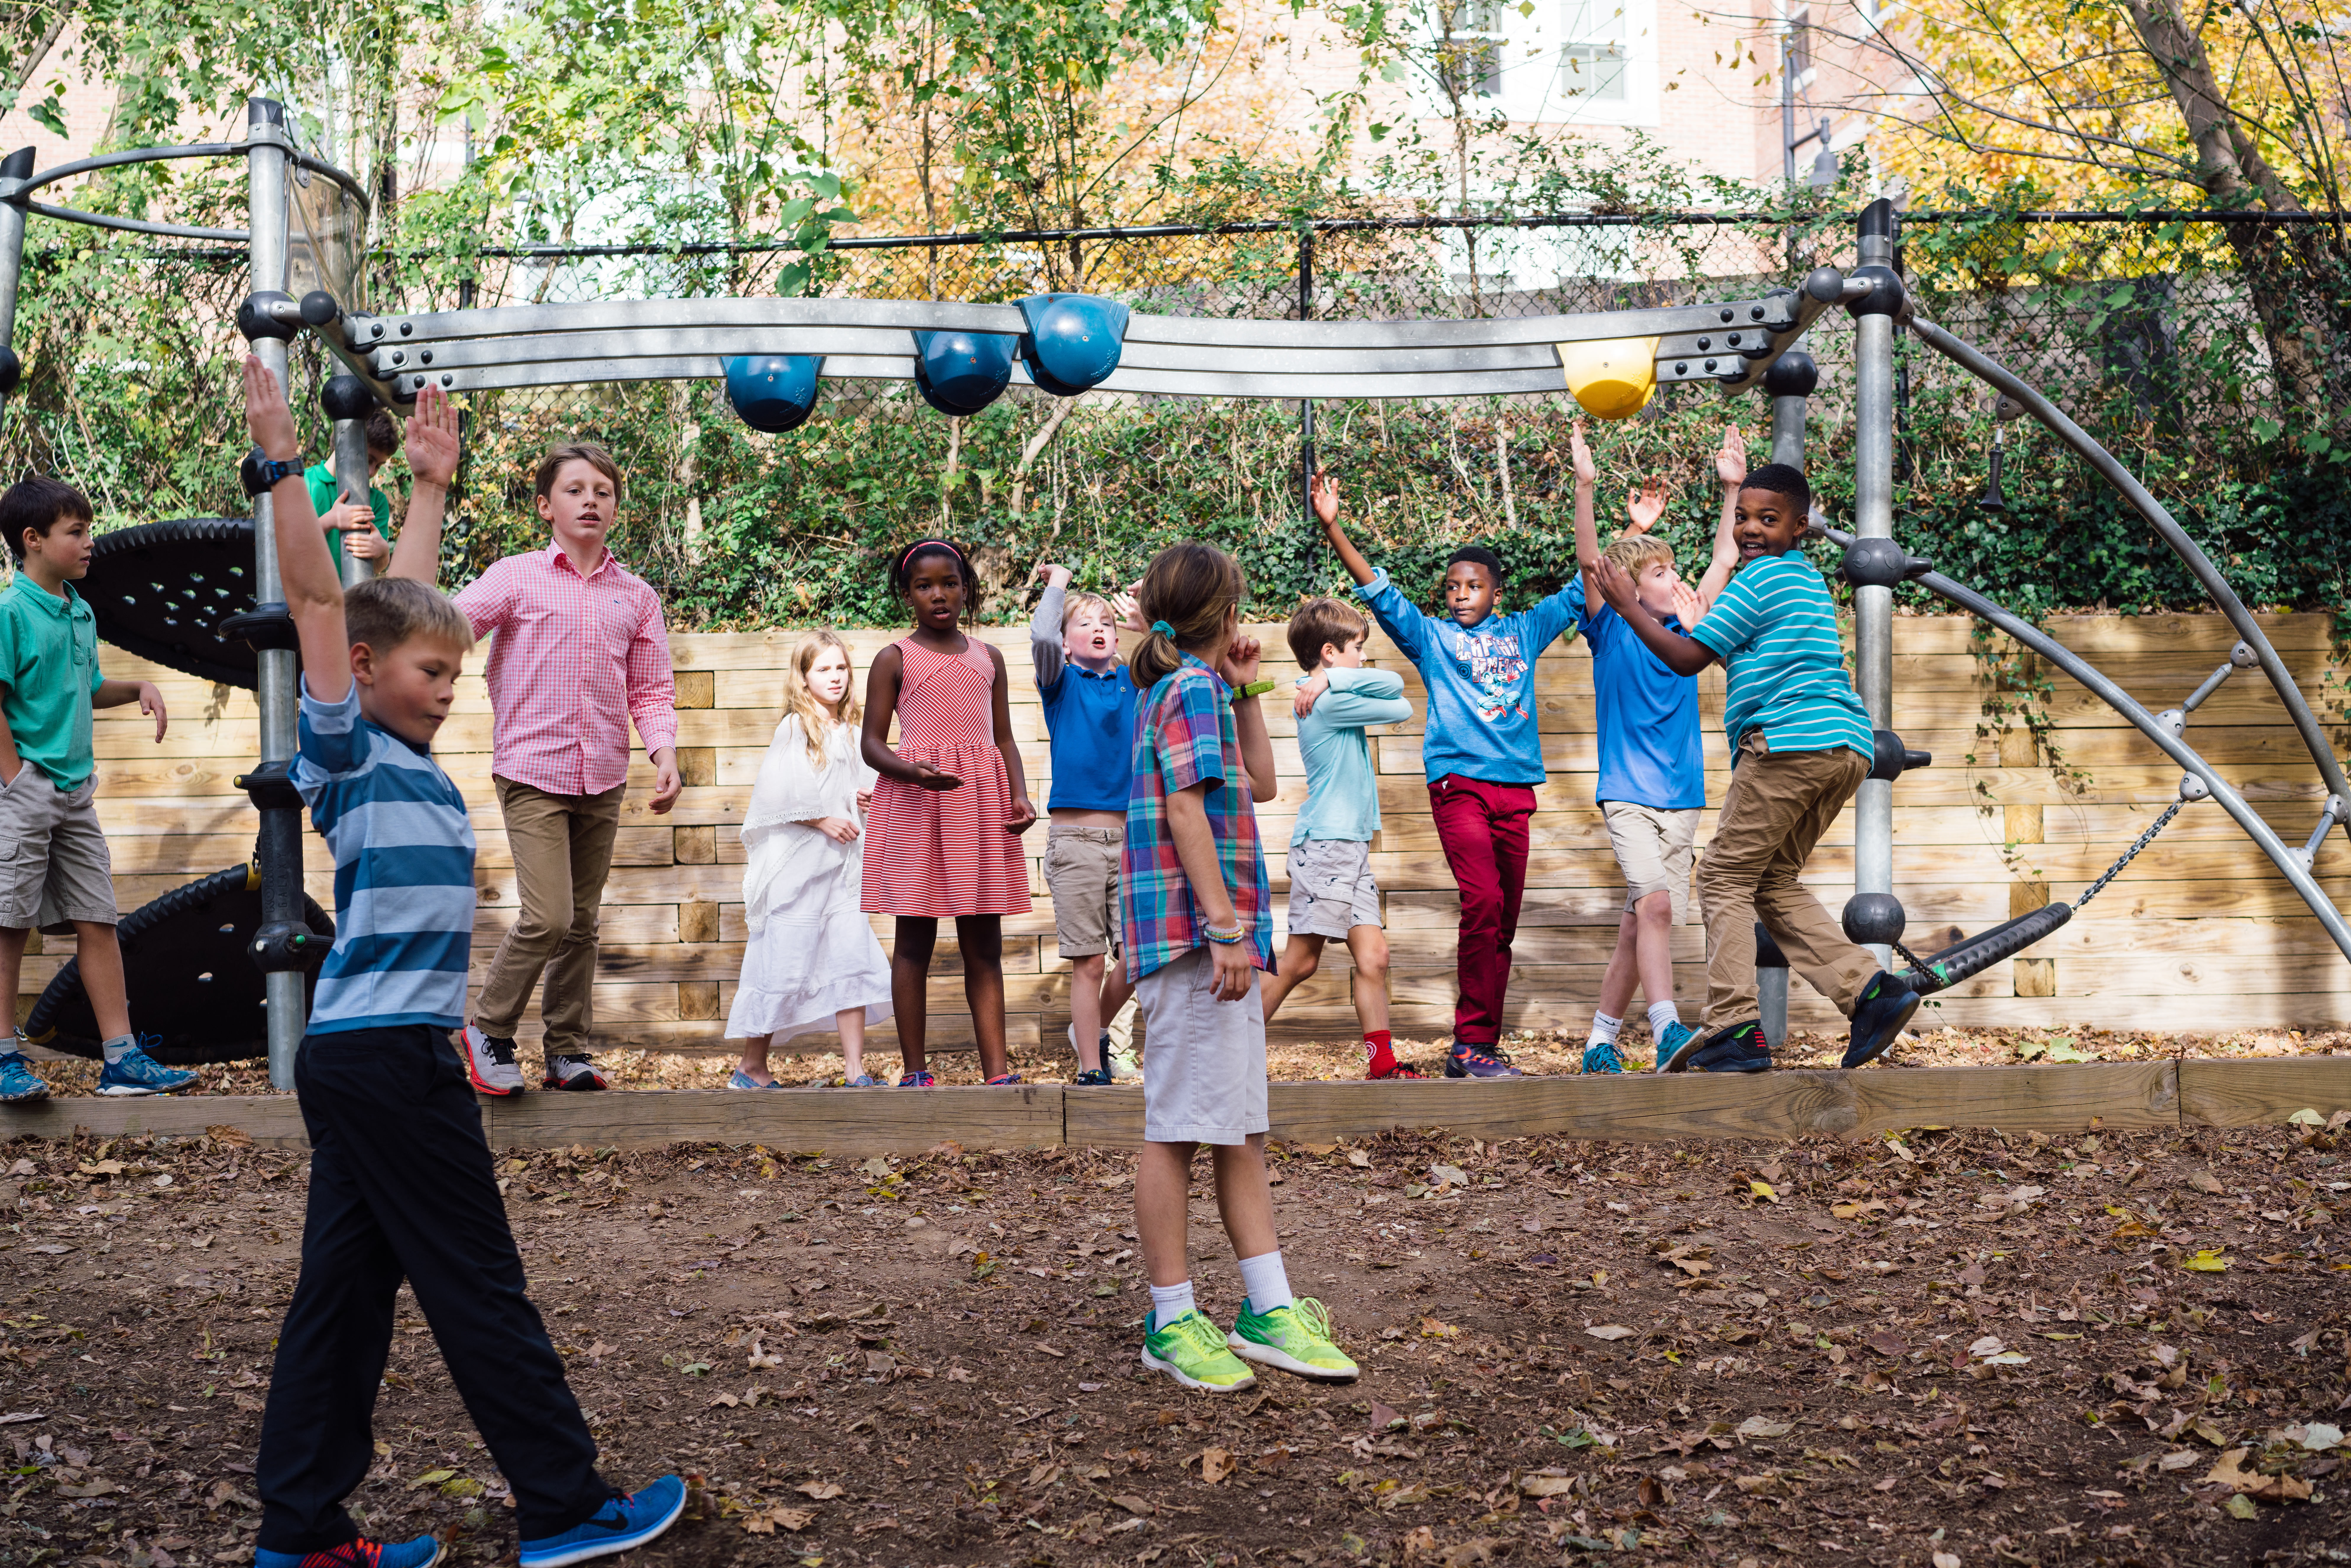 Lower school students on playground